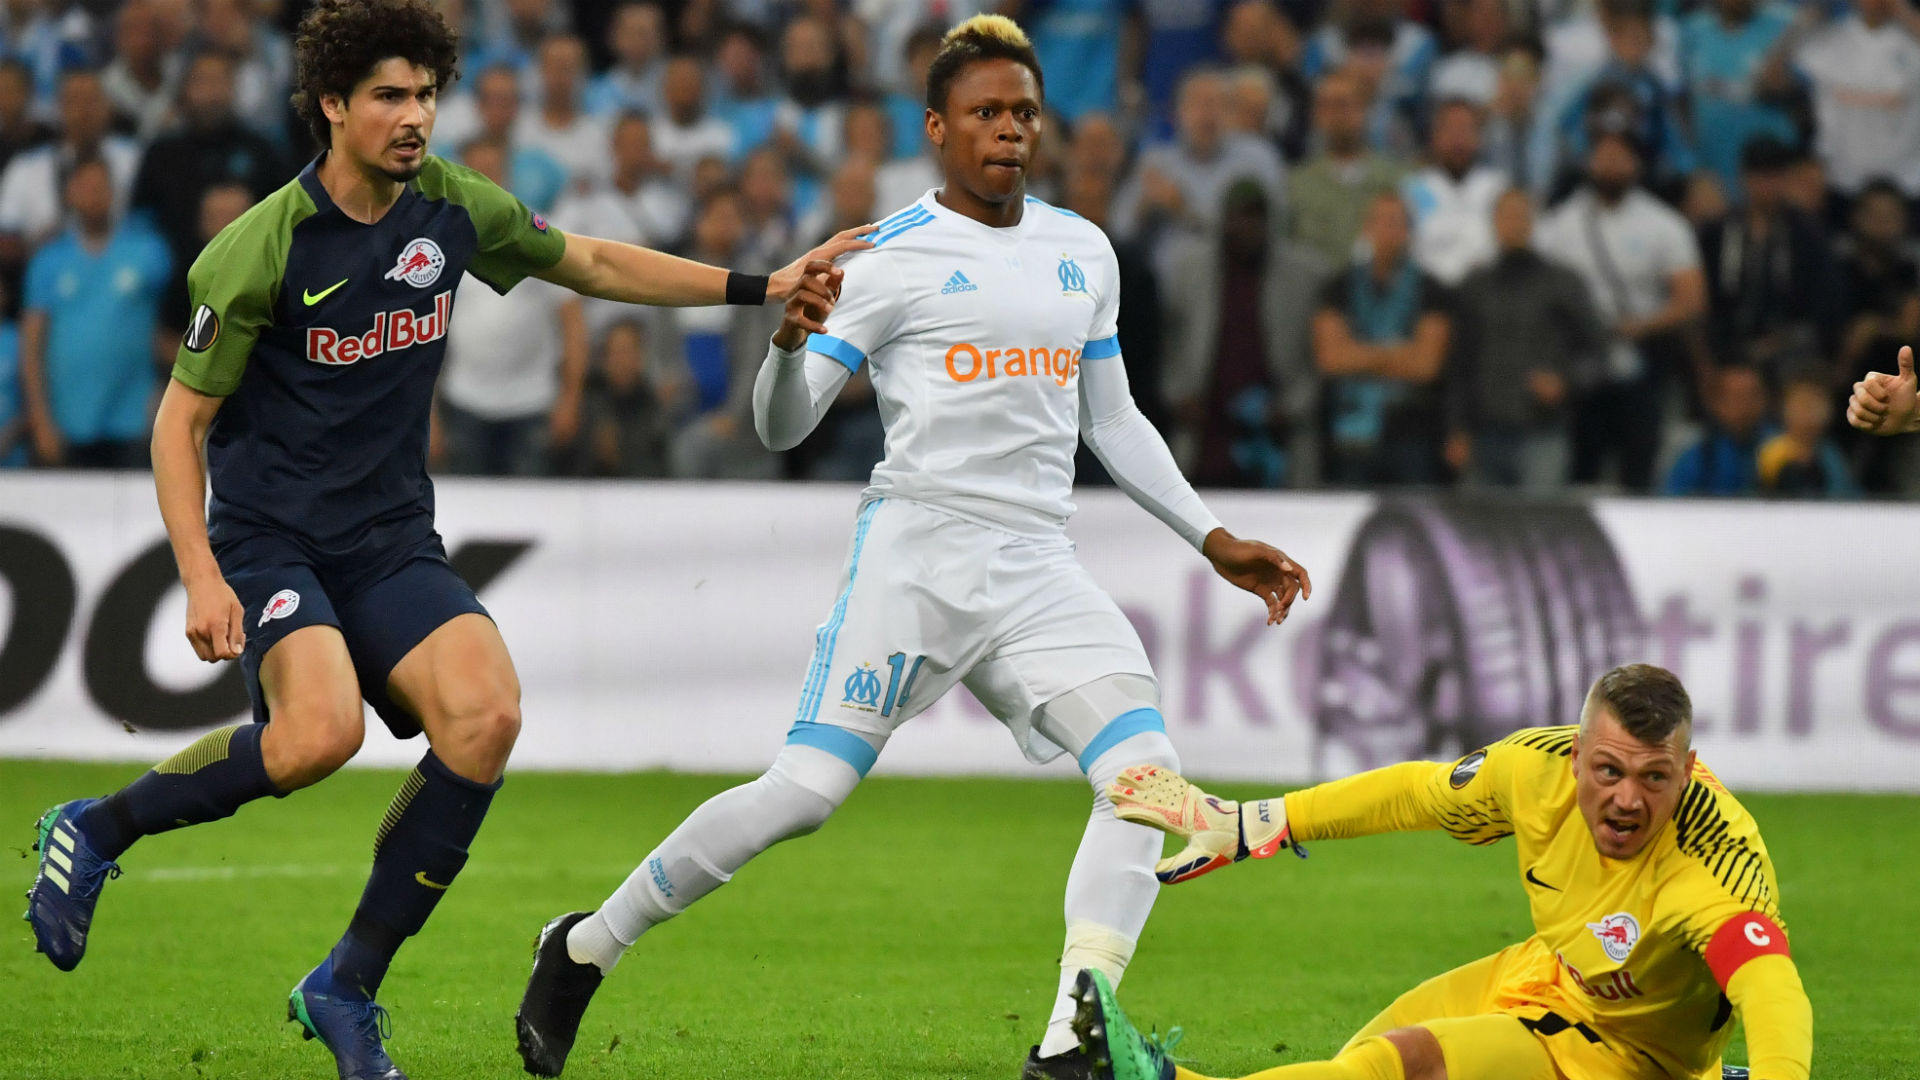 Marseille Seal Europa League Final Spot With Controversial Goal